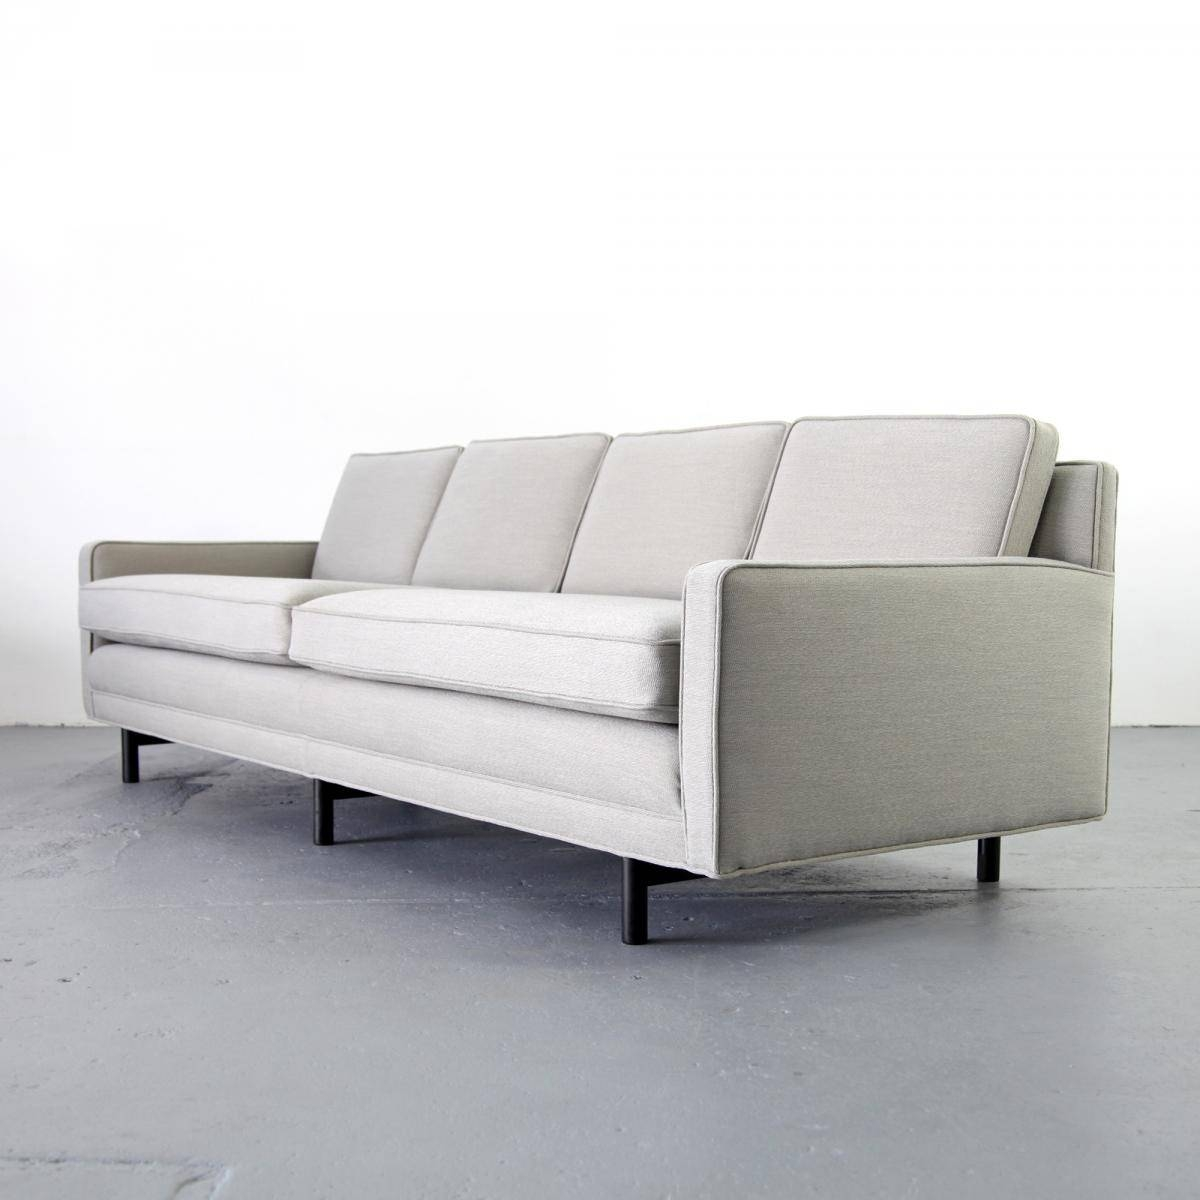 4-Seater Sofapaul Mccobb For Directional For Sale At Pamono with Four Seater Sofas (Image 1 of 30)